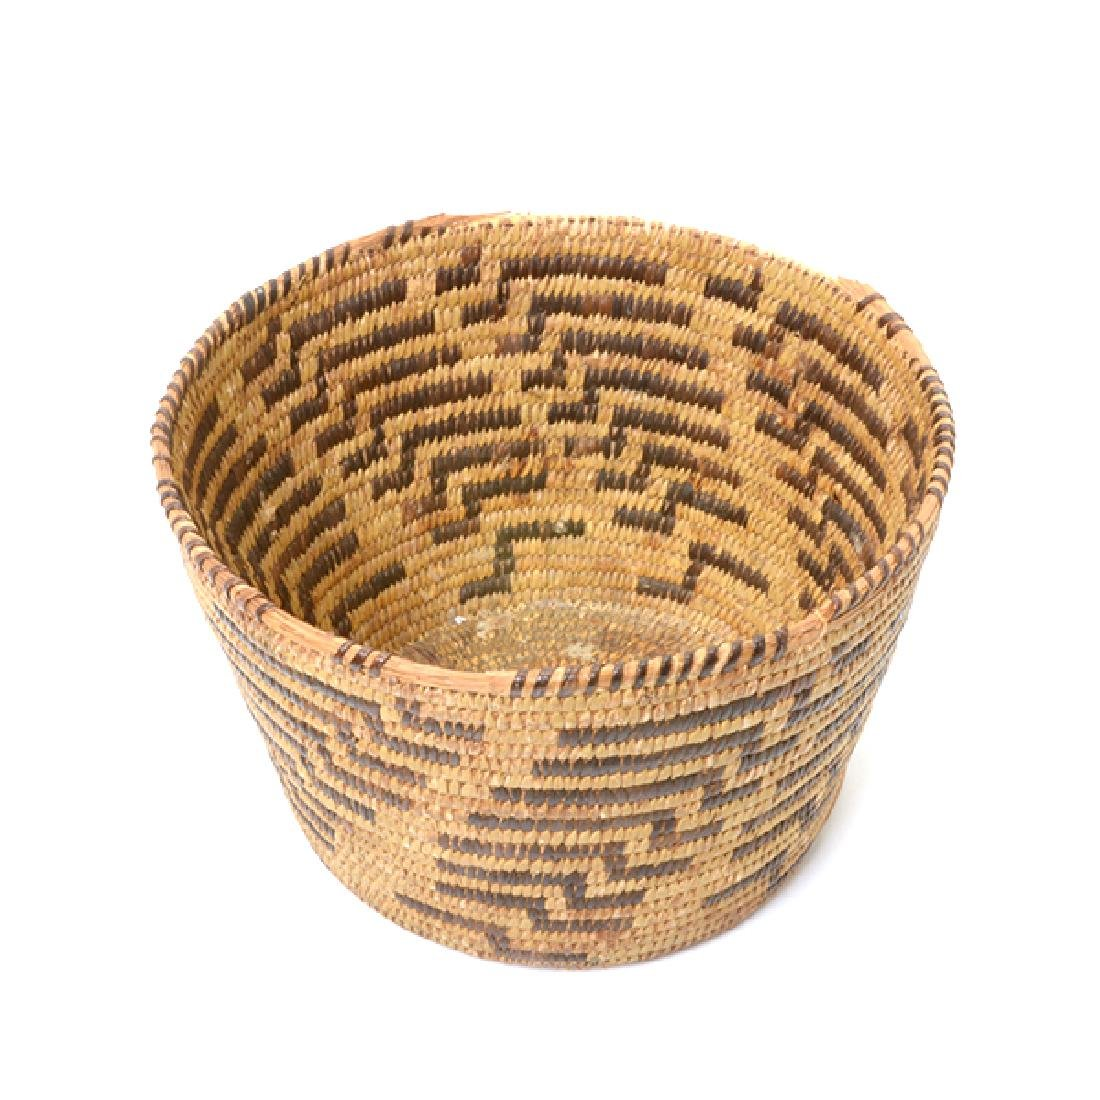 Three Native American Hand Woven Baskets - 5